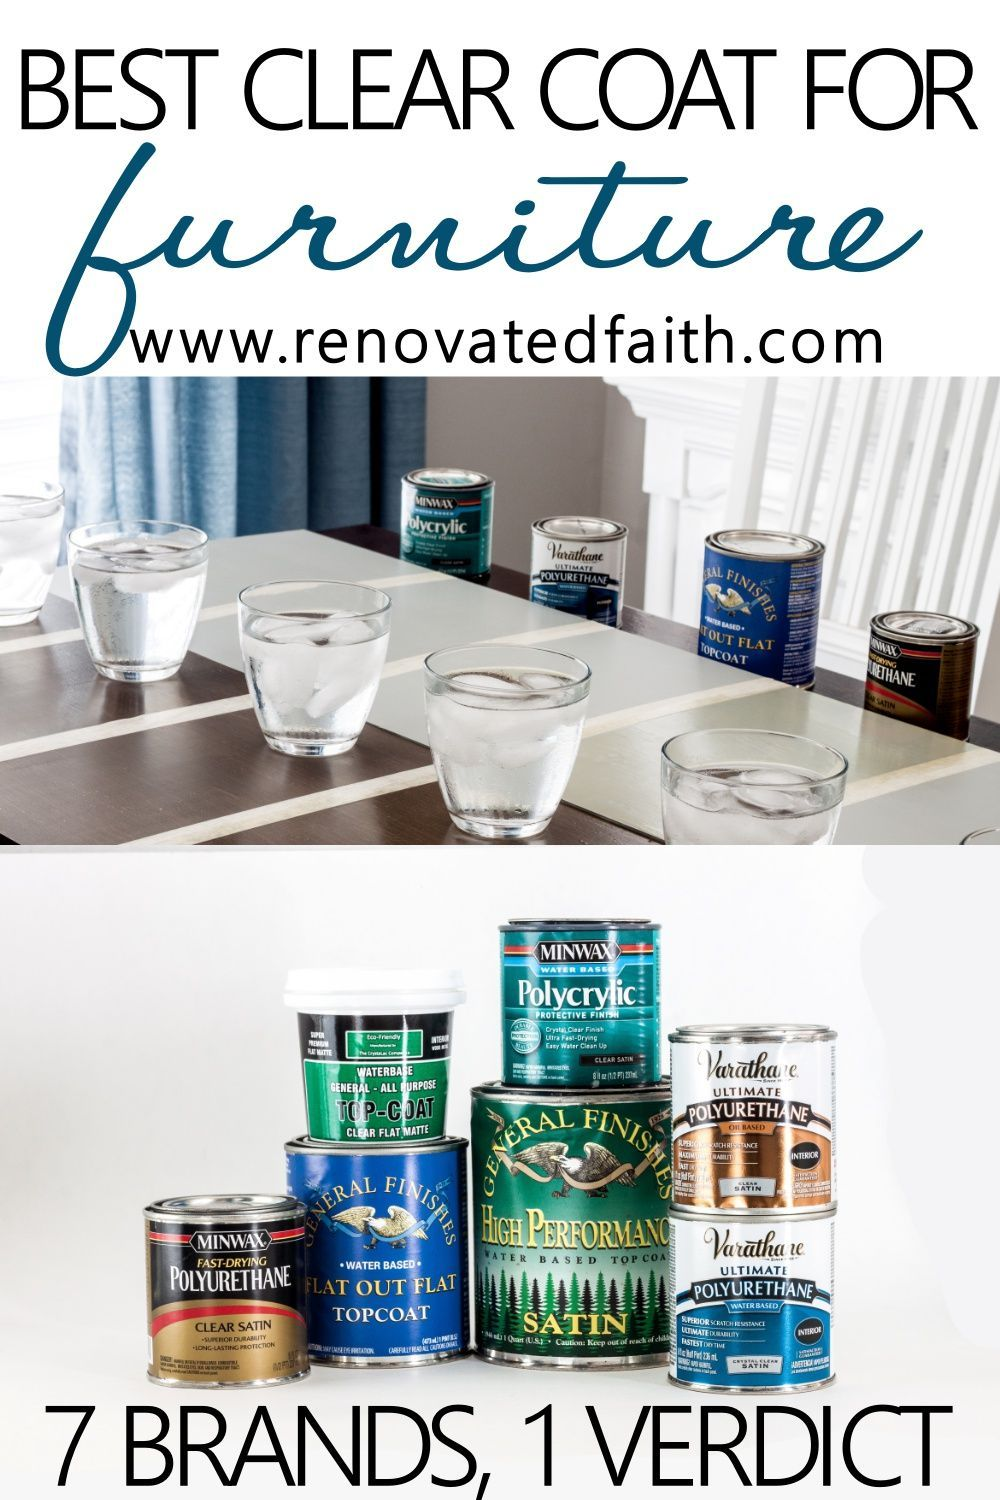 The Best Clear Coat For Furniture 2020 Best Chalk Paint Top Coat In 2020 Best Chalk Paint Chalk Paint Furniture Painted Furniture